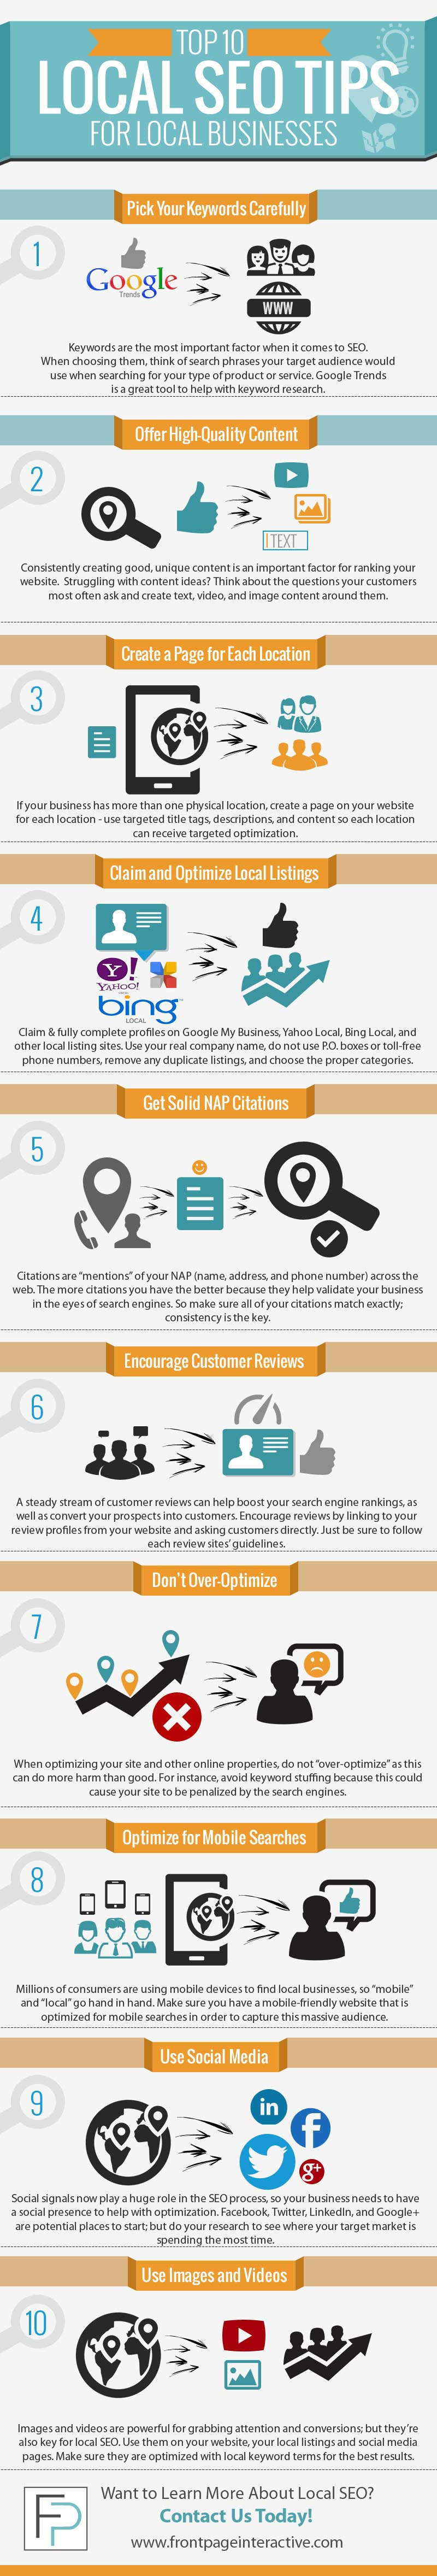 Top 10 Local SEO Tips